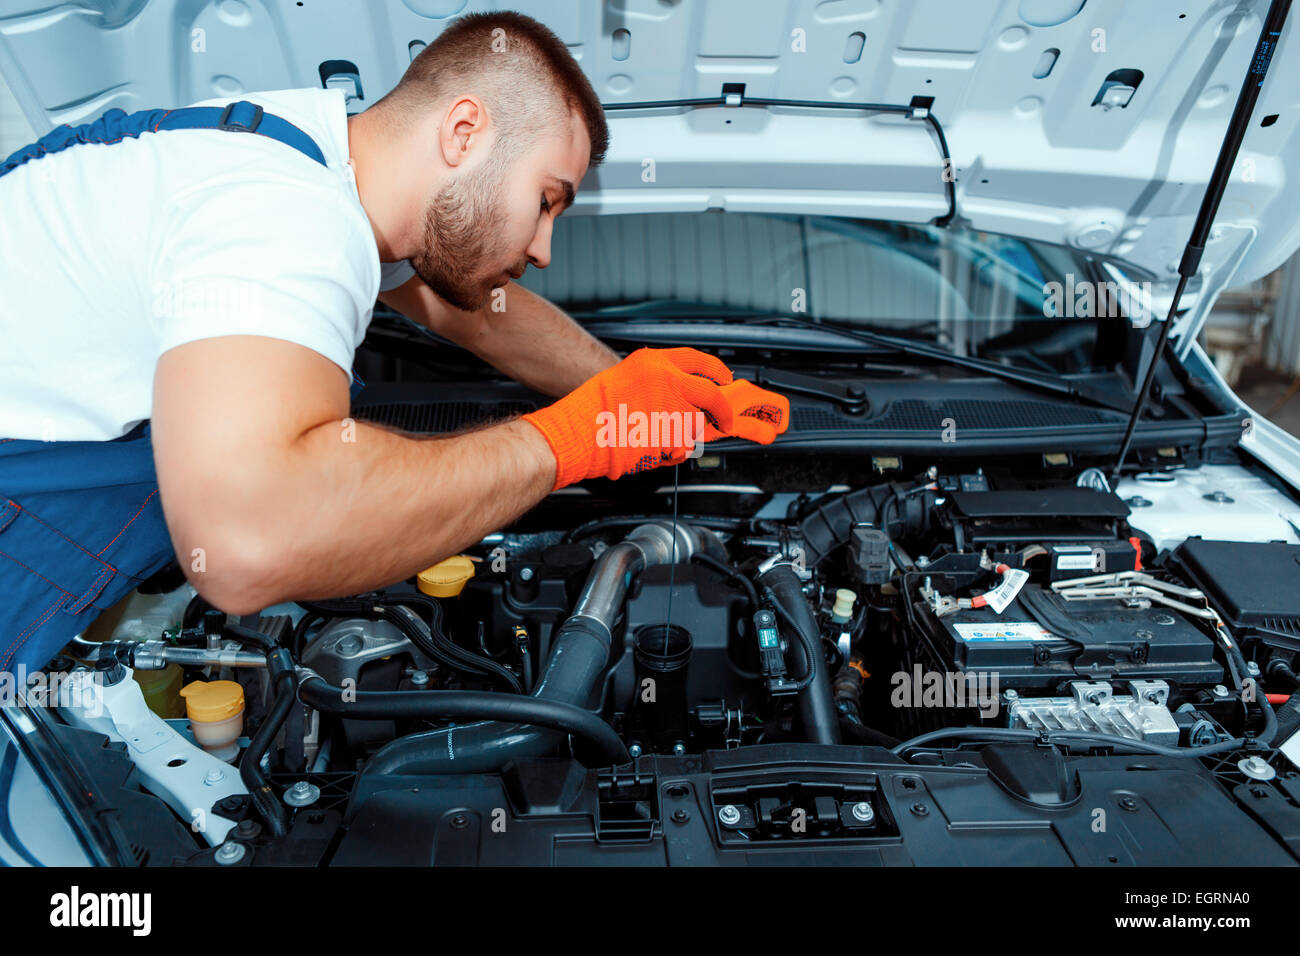 Car mechanic at the service station - Stock Image